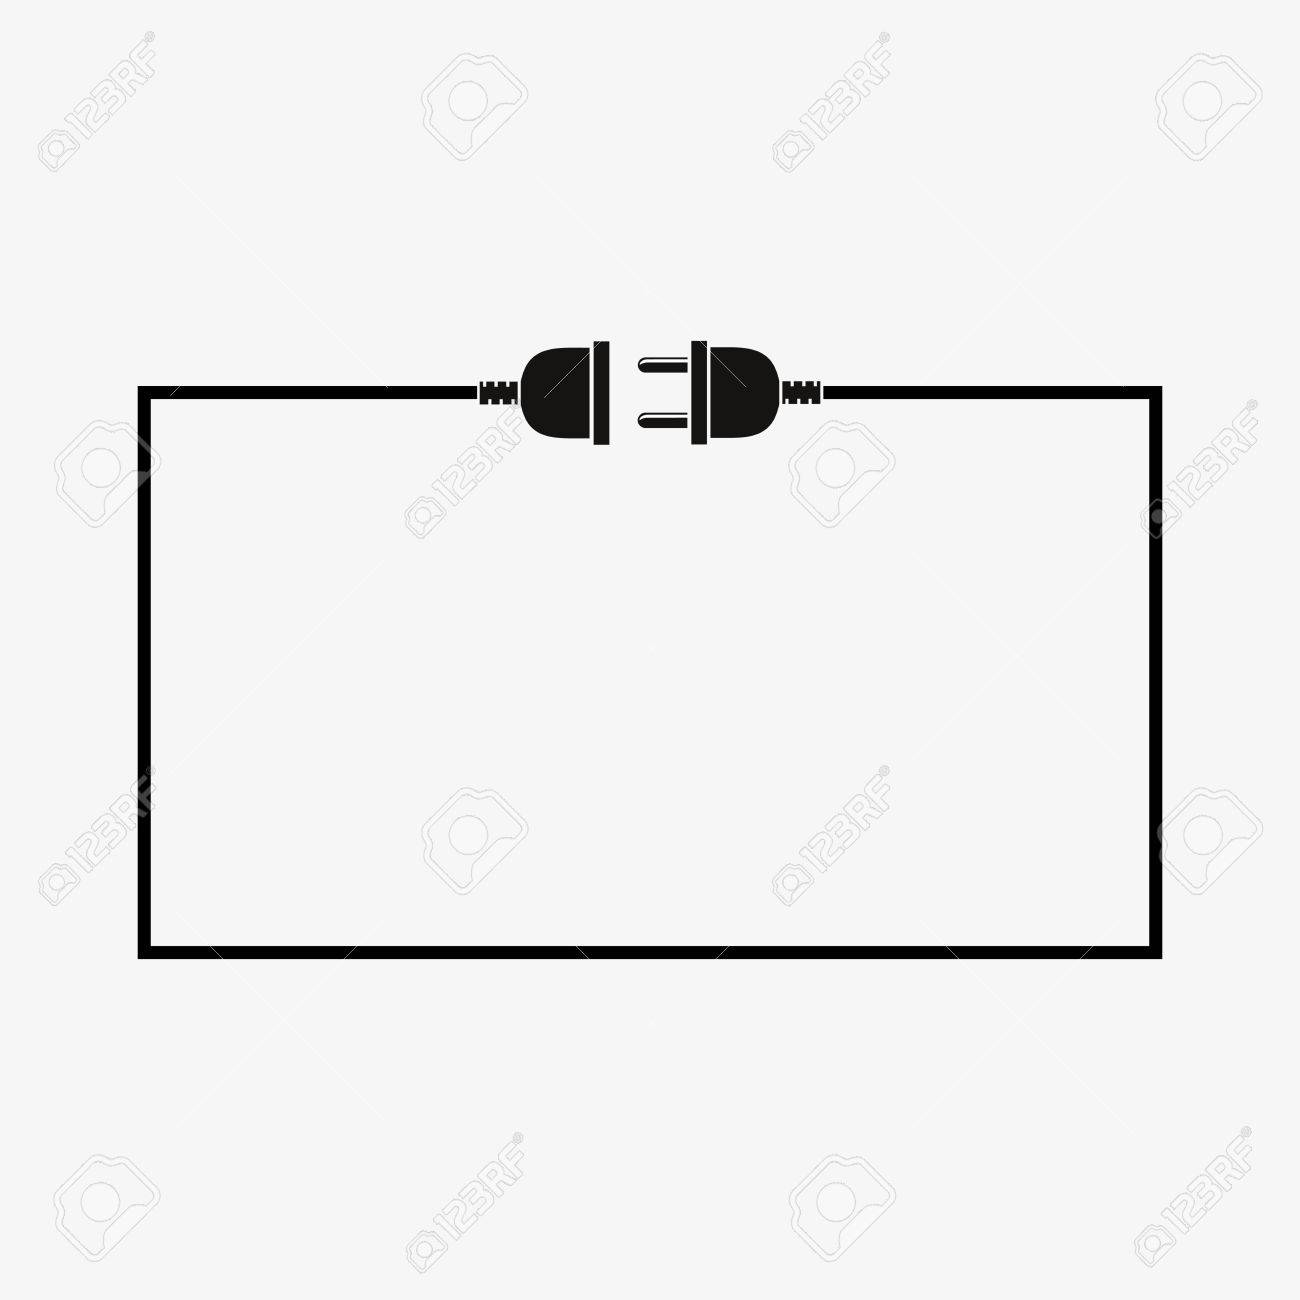 Wire Plug And Socket Vector Illustration Concept Connection Wiring Diagram Sockets Disconnection Electricity